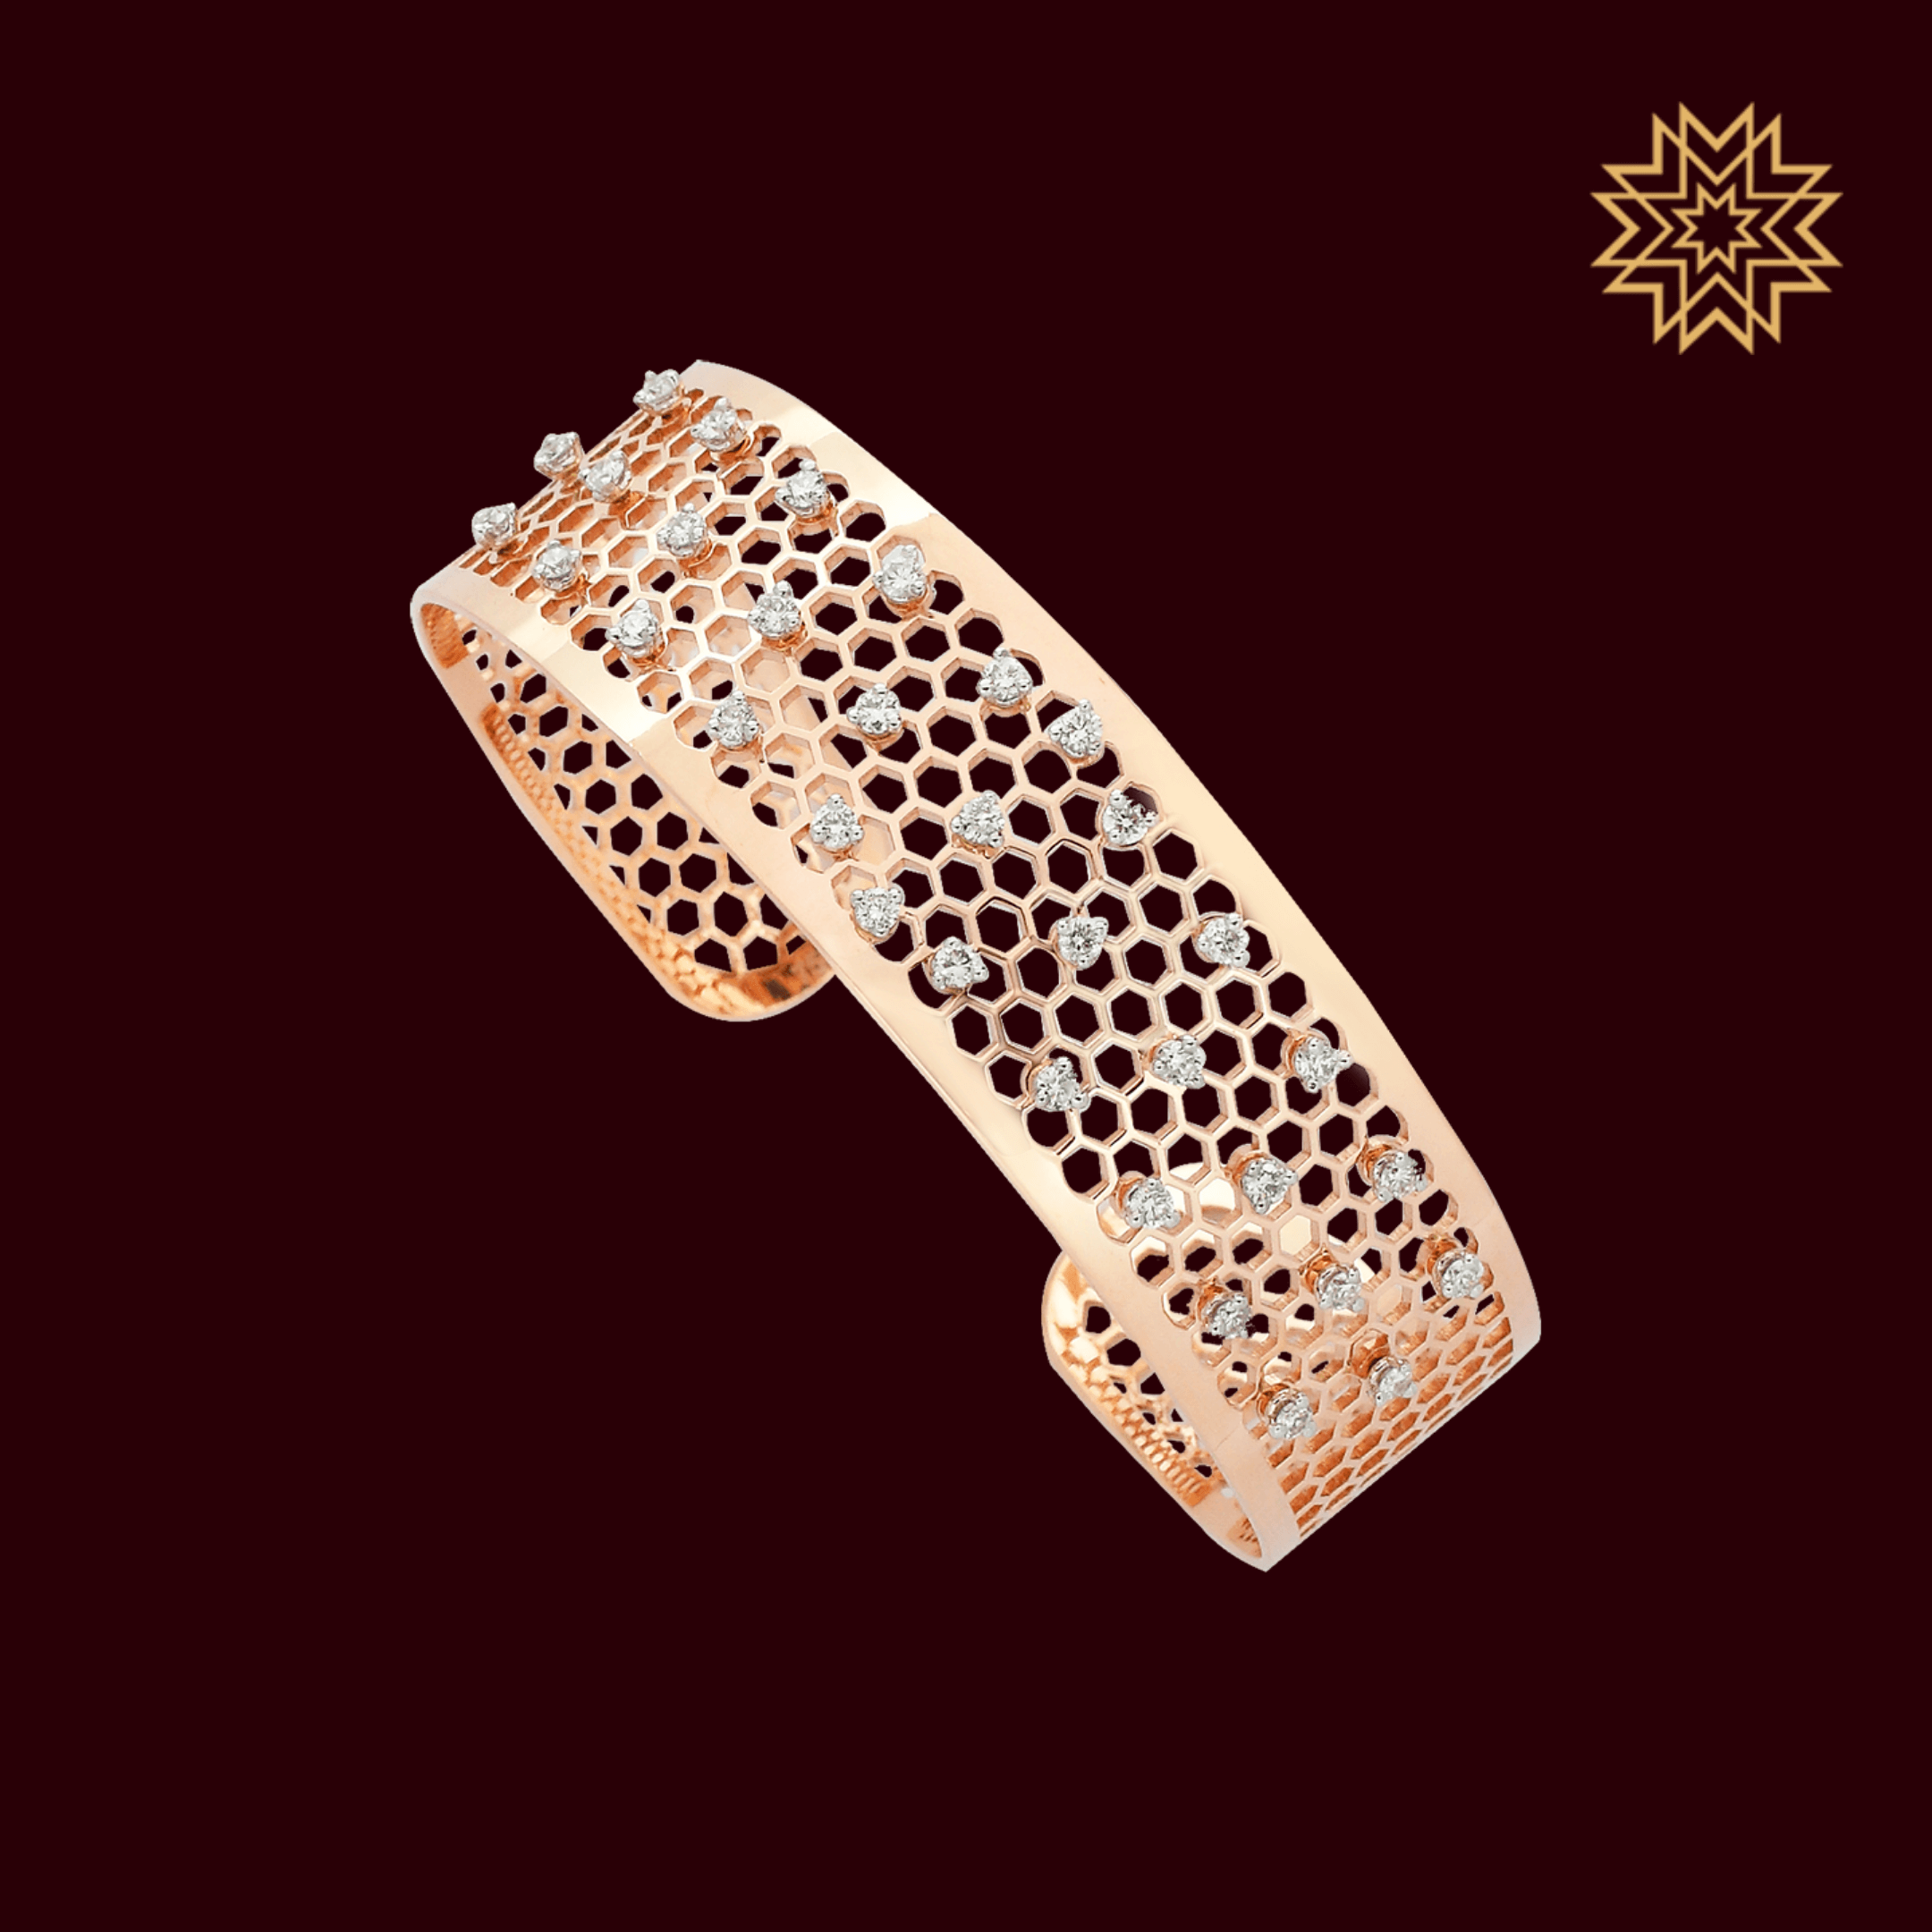 A vision of ecstasy with diamonds of pure authenticity.